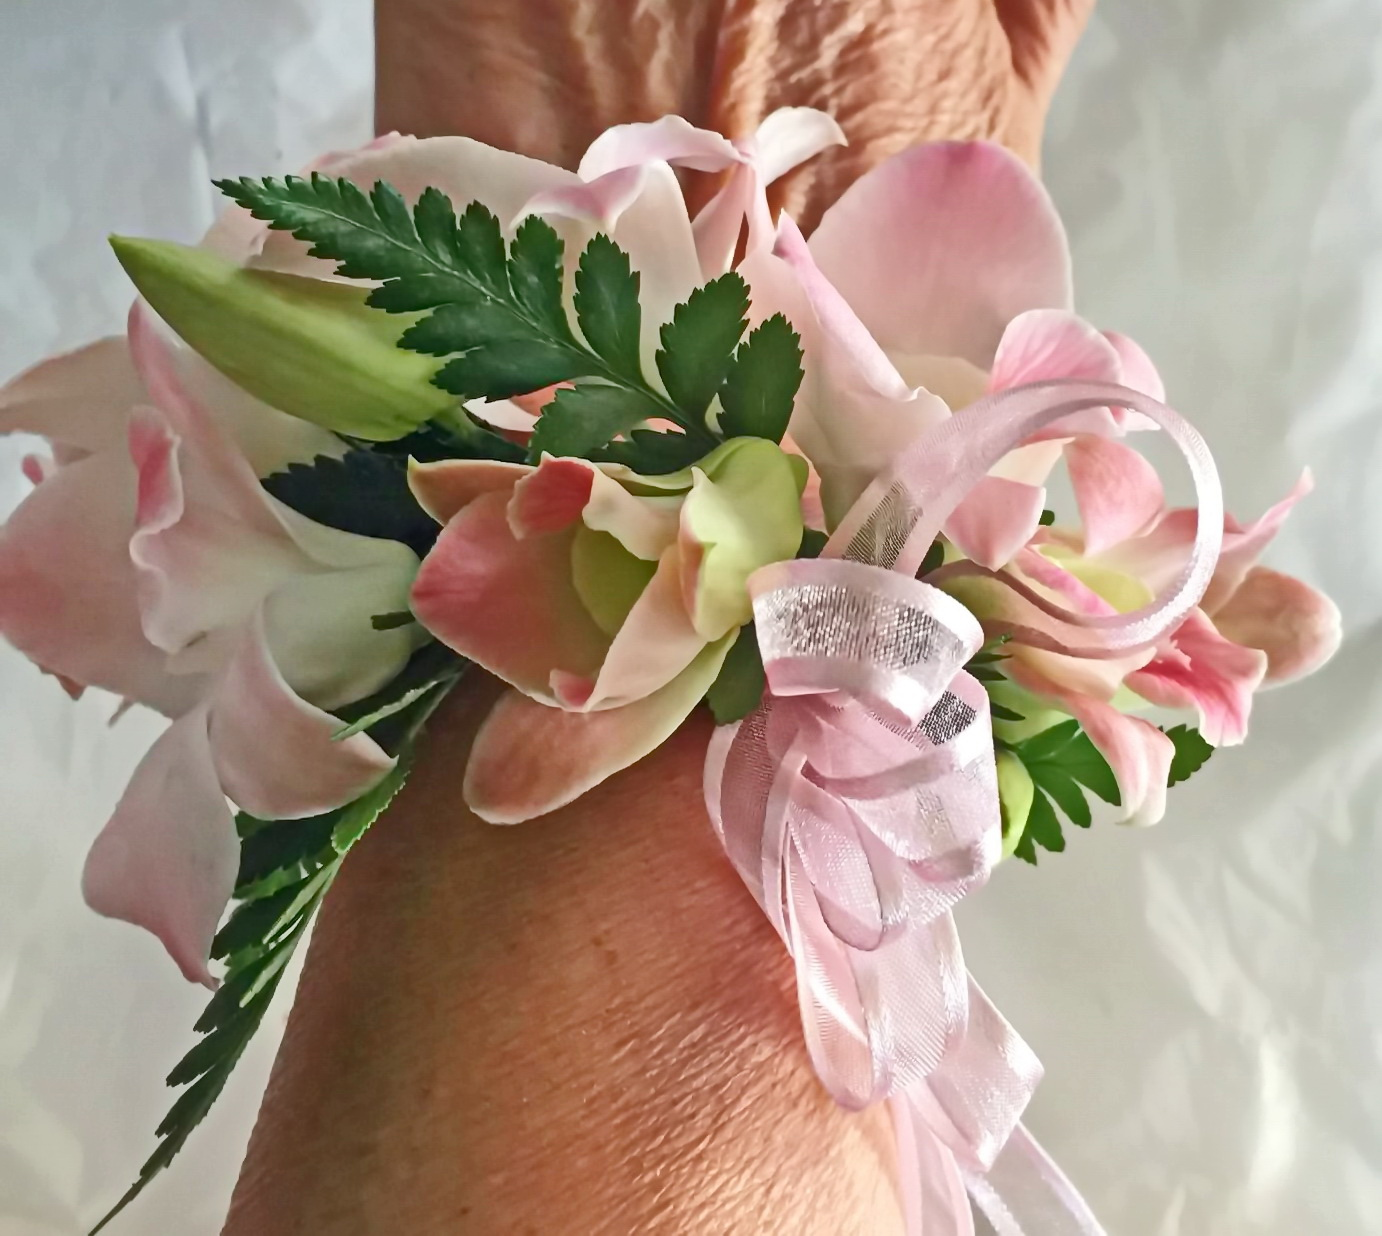 Wrist and Buttonhole $40 for both